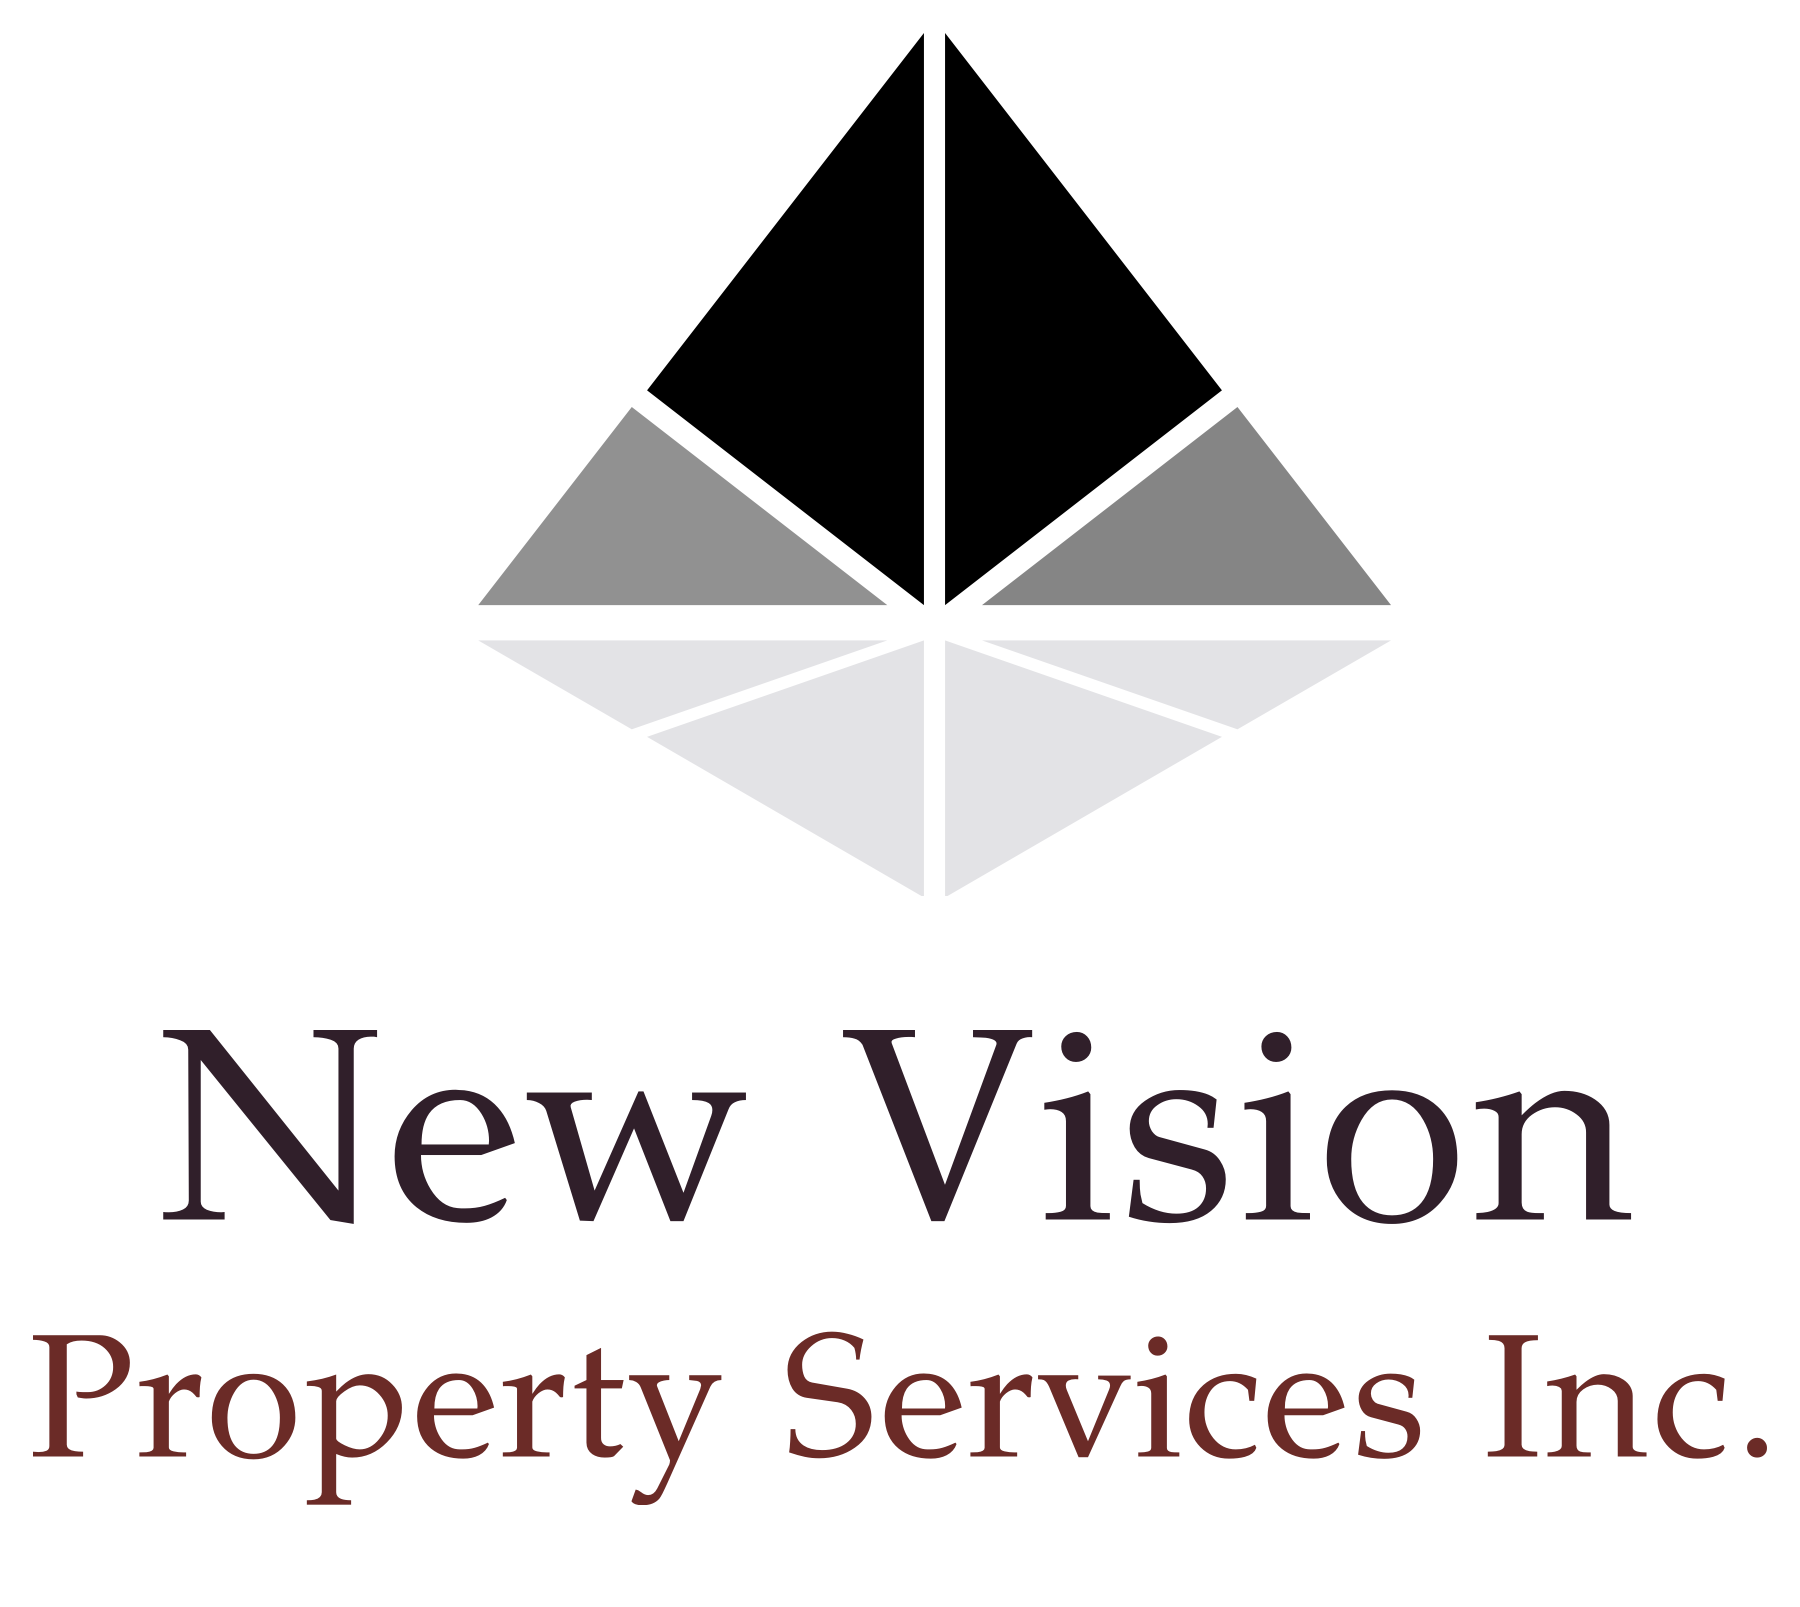 New Vision Property Services